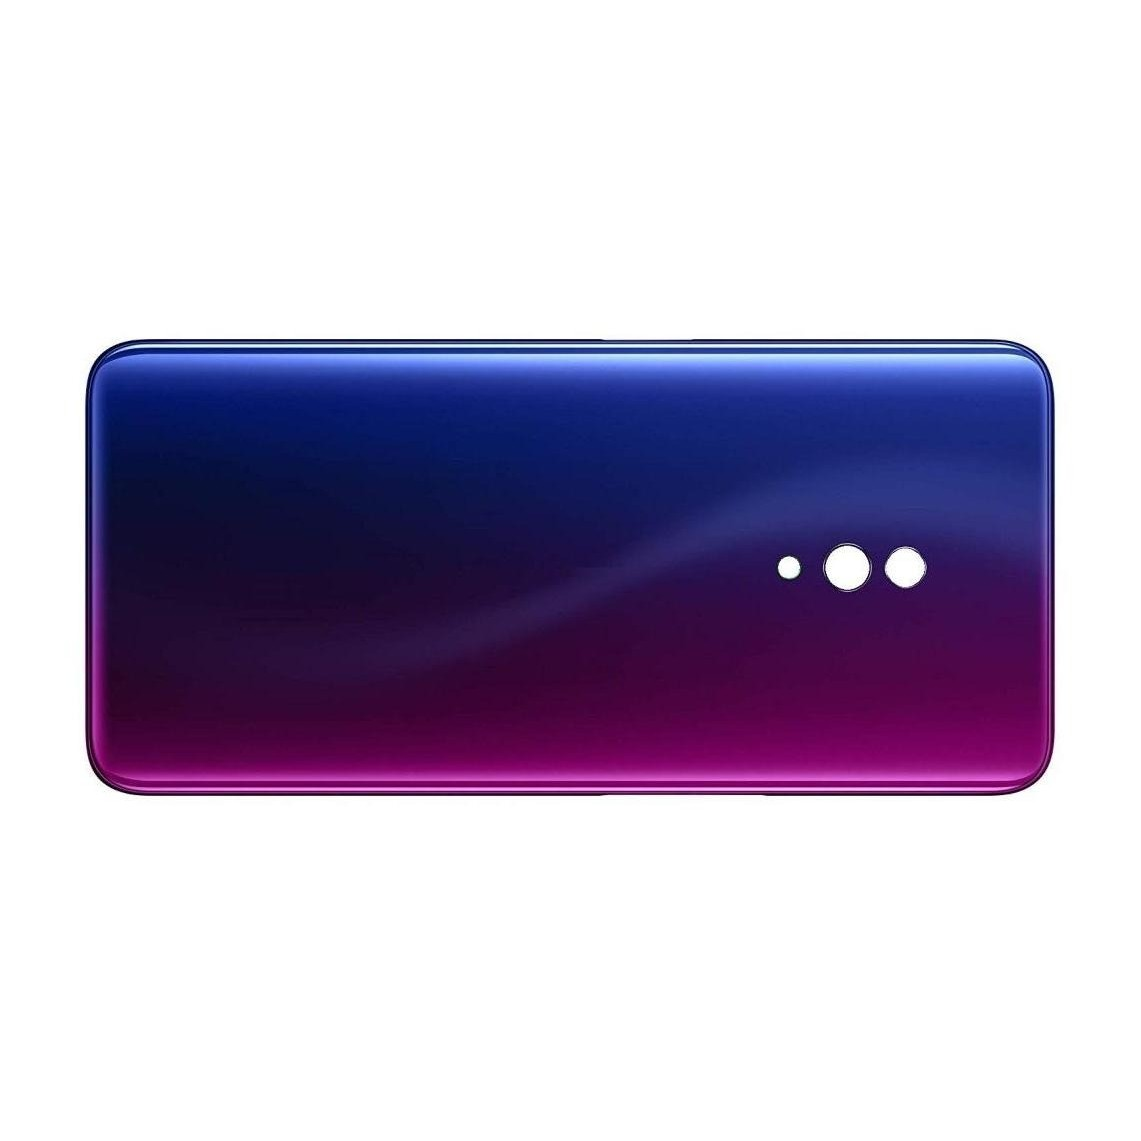 Oppo K3 Compatible Back Panel Replacement Cover - Purple